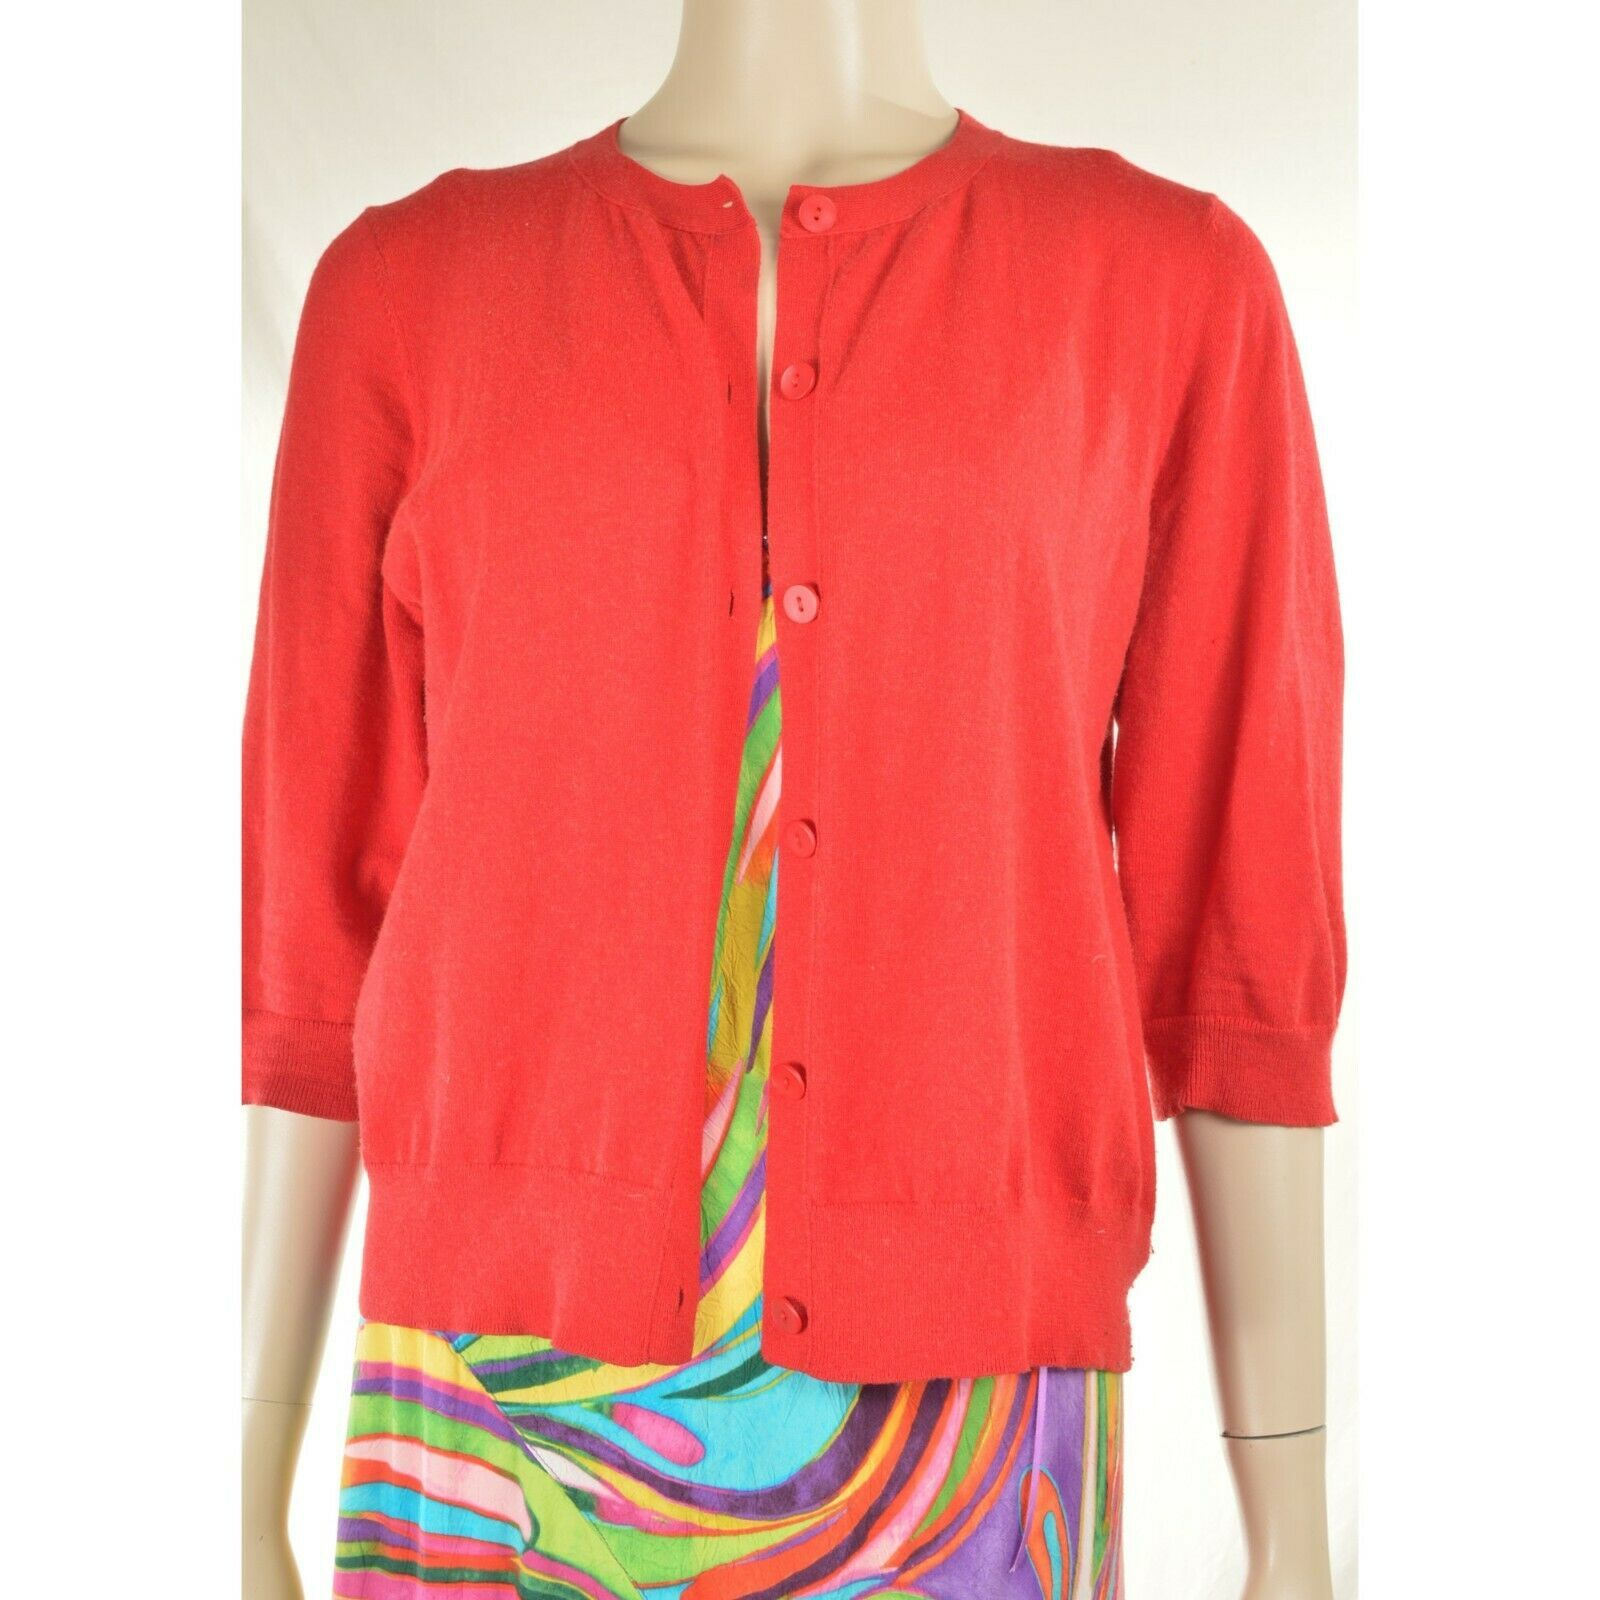 Eileen Fisher sweater M red cardigan 3/4 sleeves organic cotton cashmere blend image 12